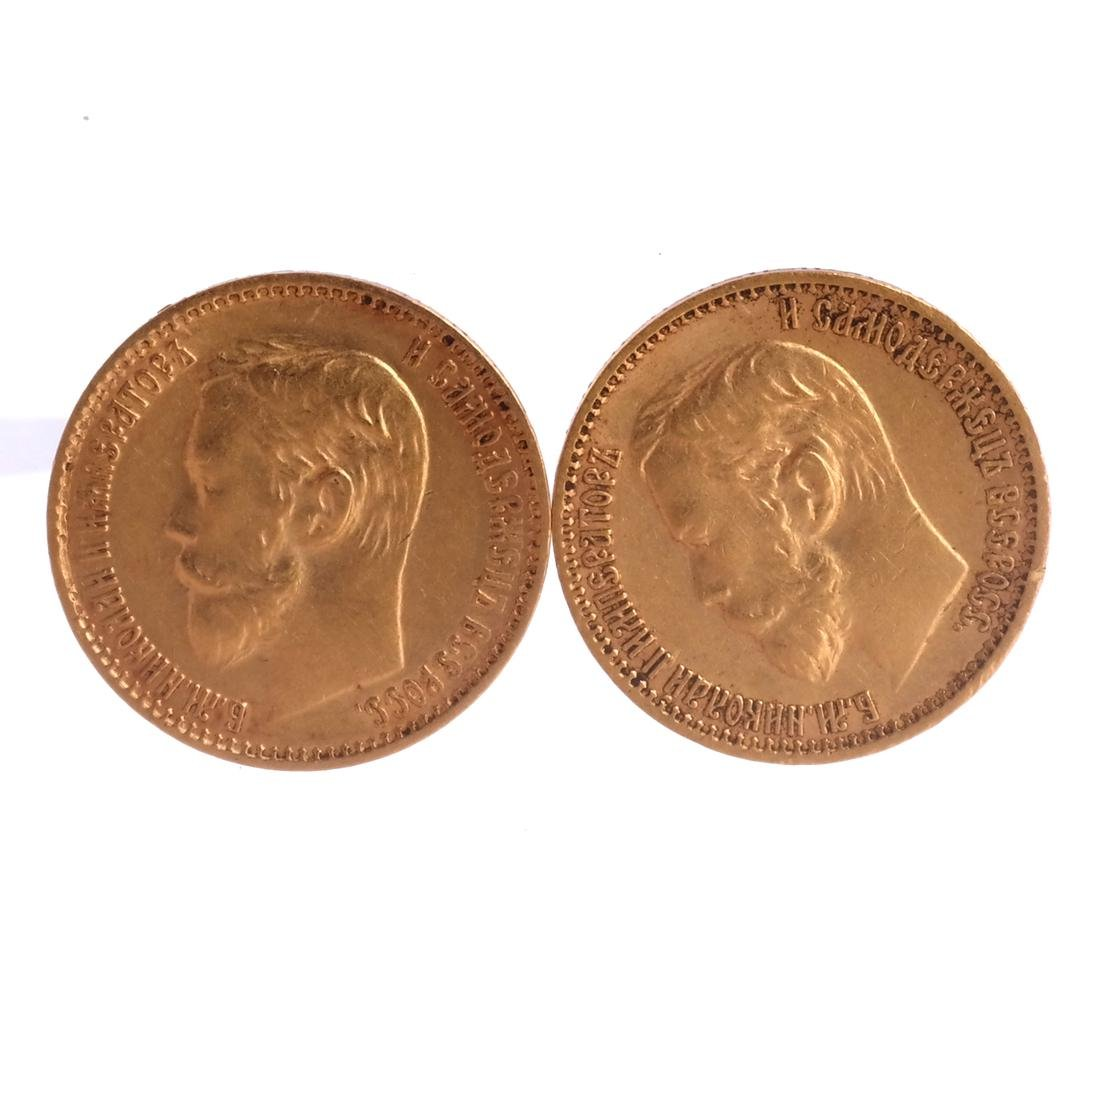 2 Russian 5-Ruble gold coins, 1898